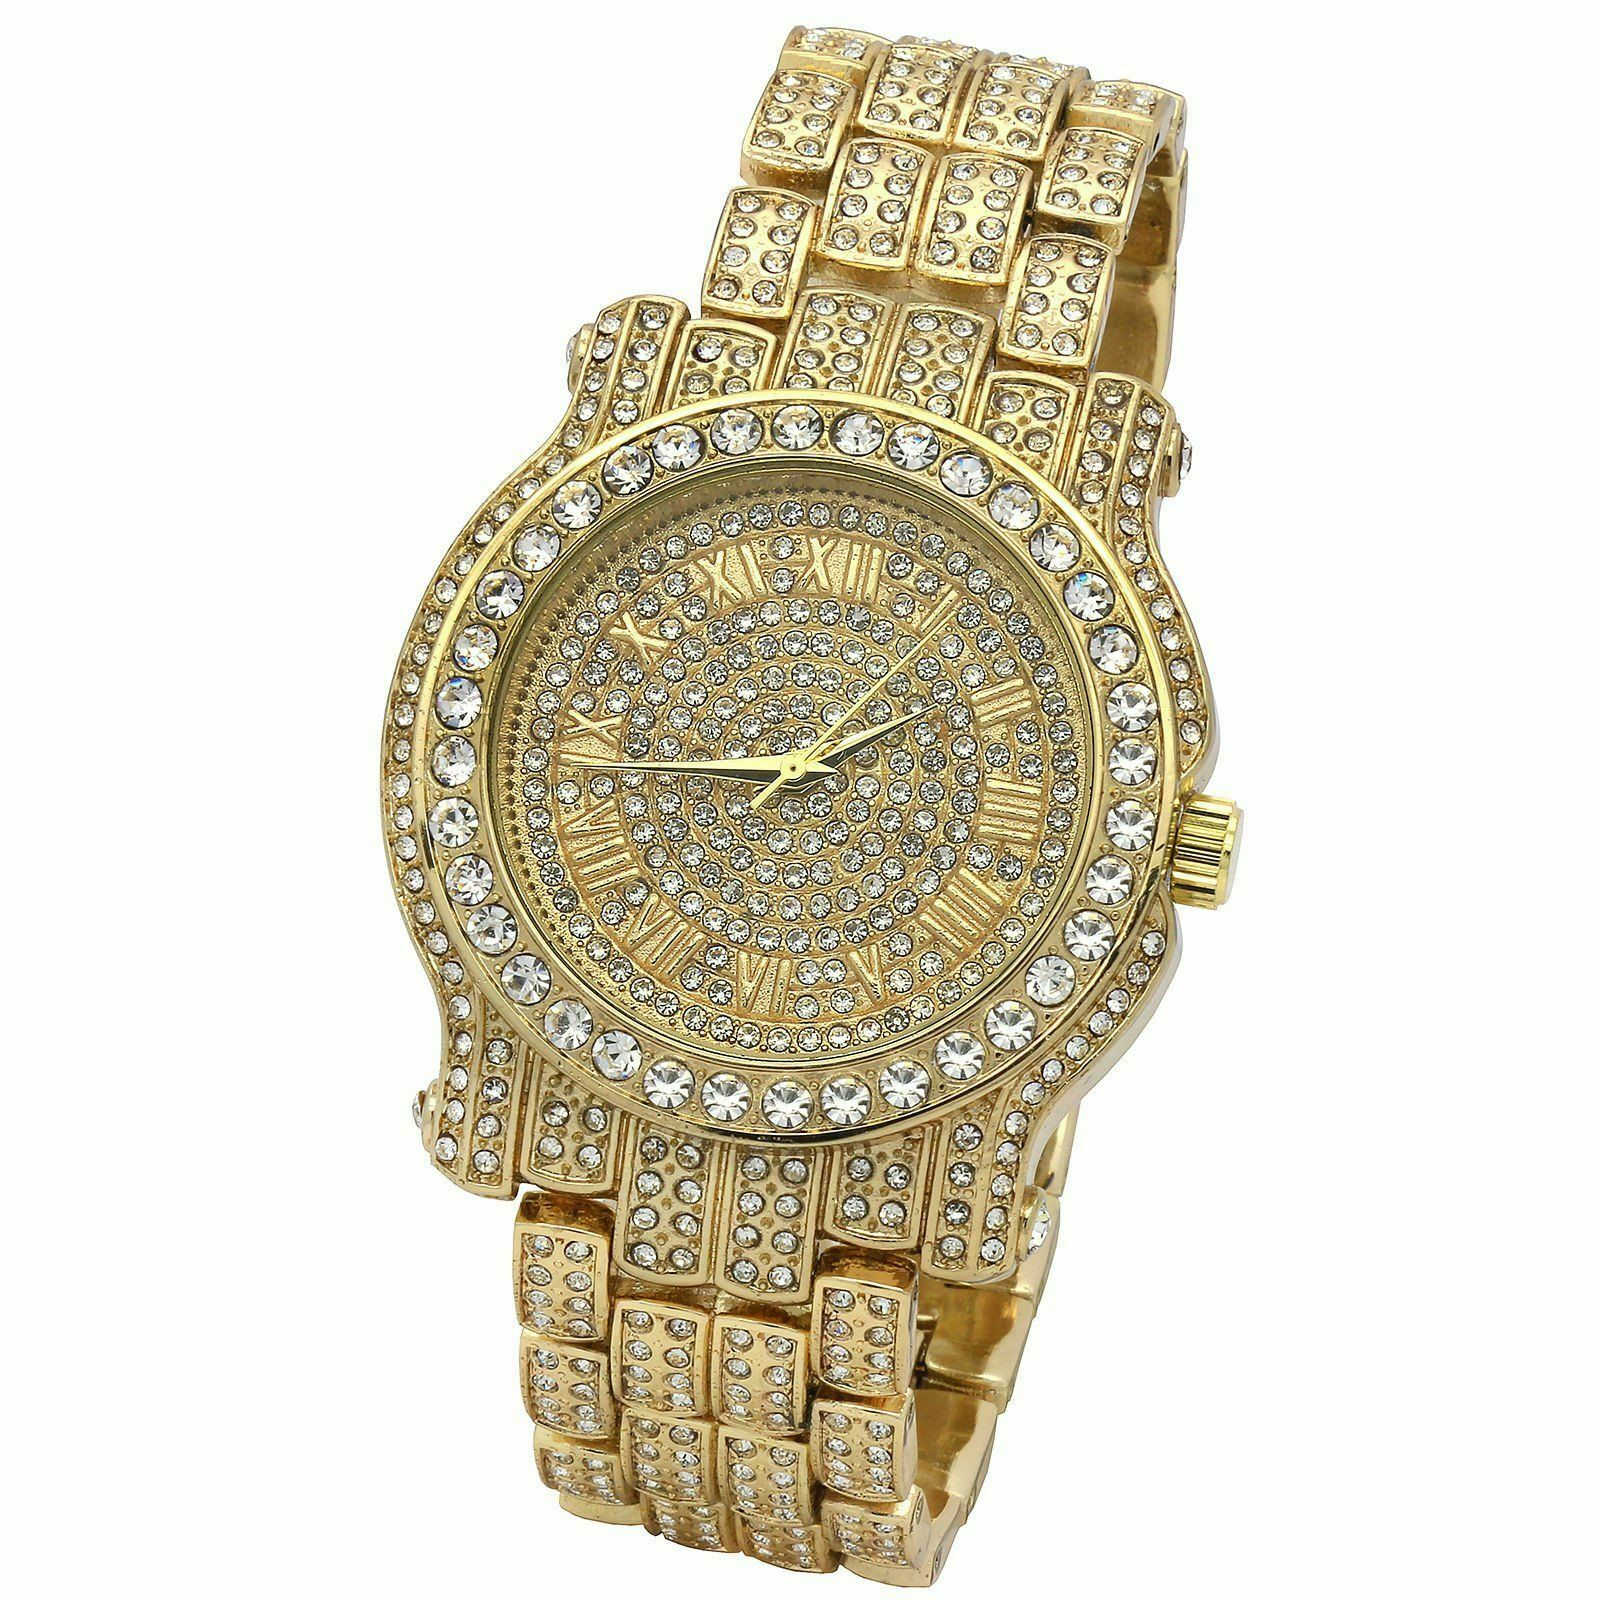 Pave Gold Tone Iced Out Men's Bling Bling Gold Metal Watch